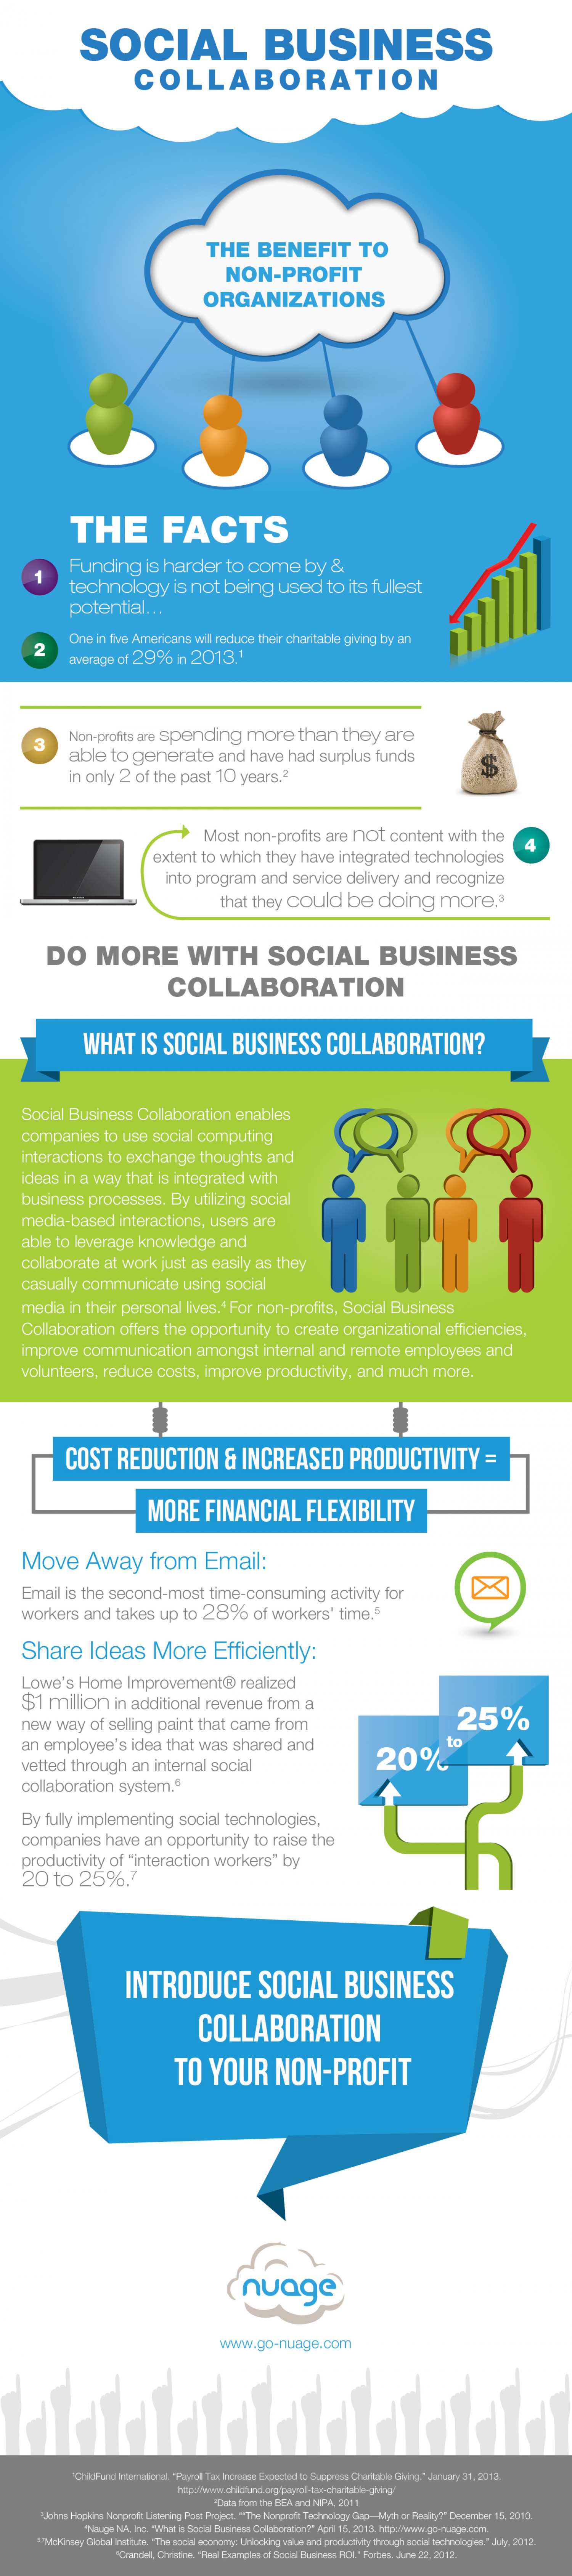 How Your Non-Profit Can Benefit from #SocBizCollaboration Infographic